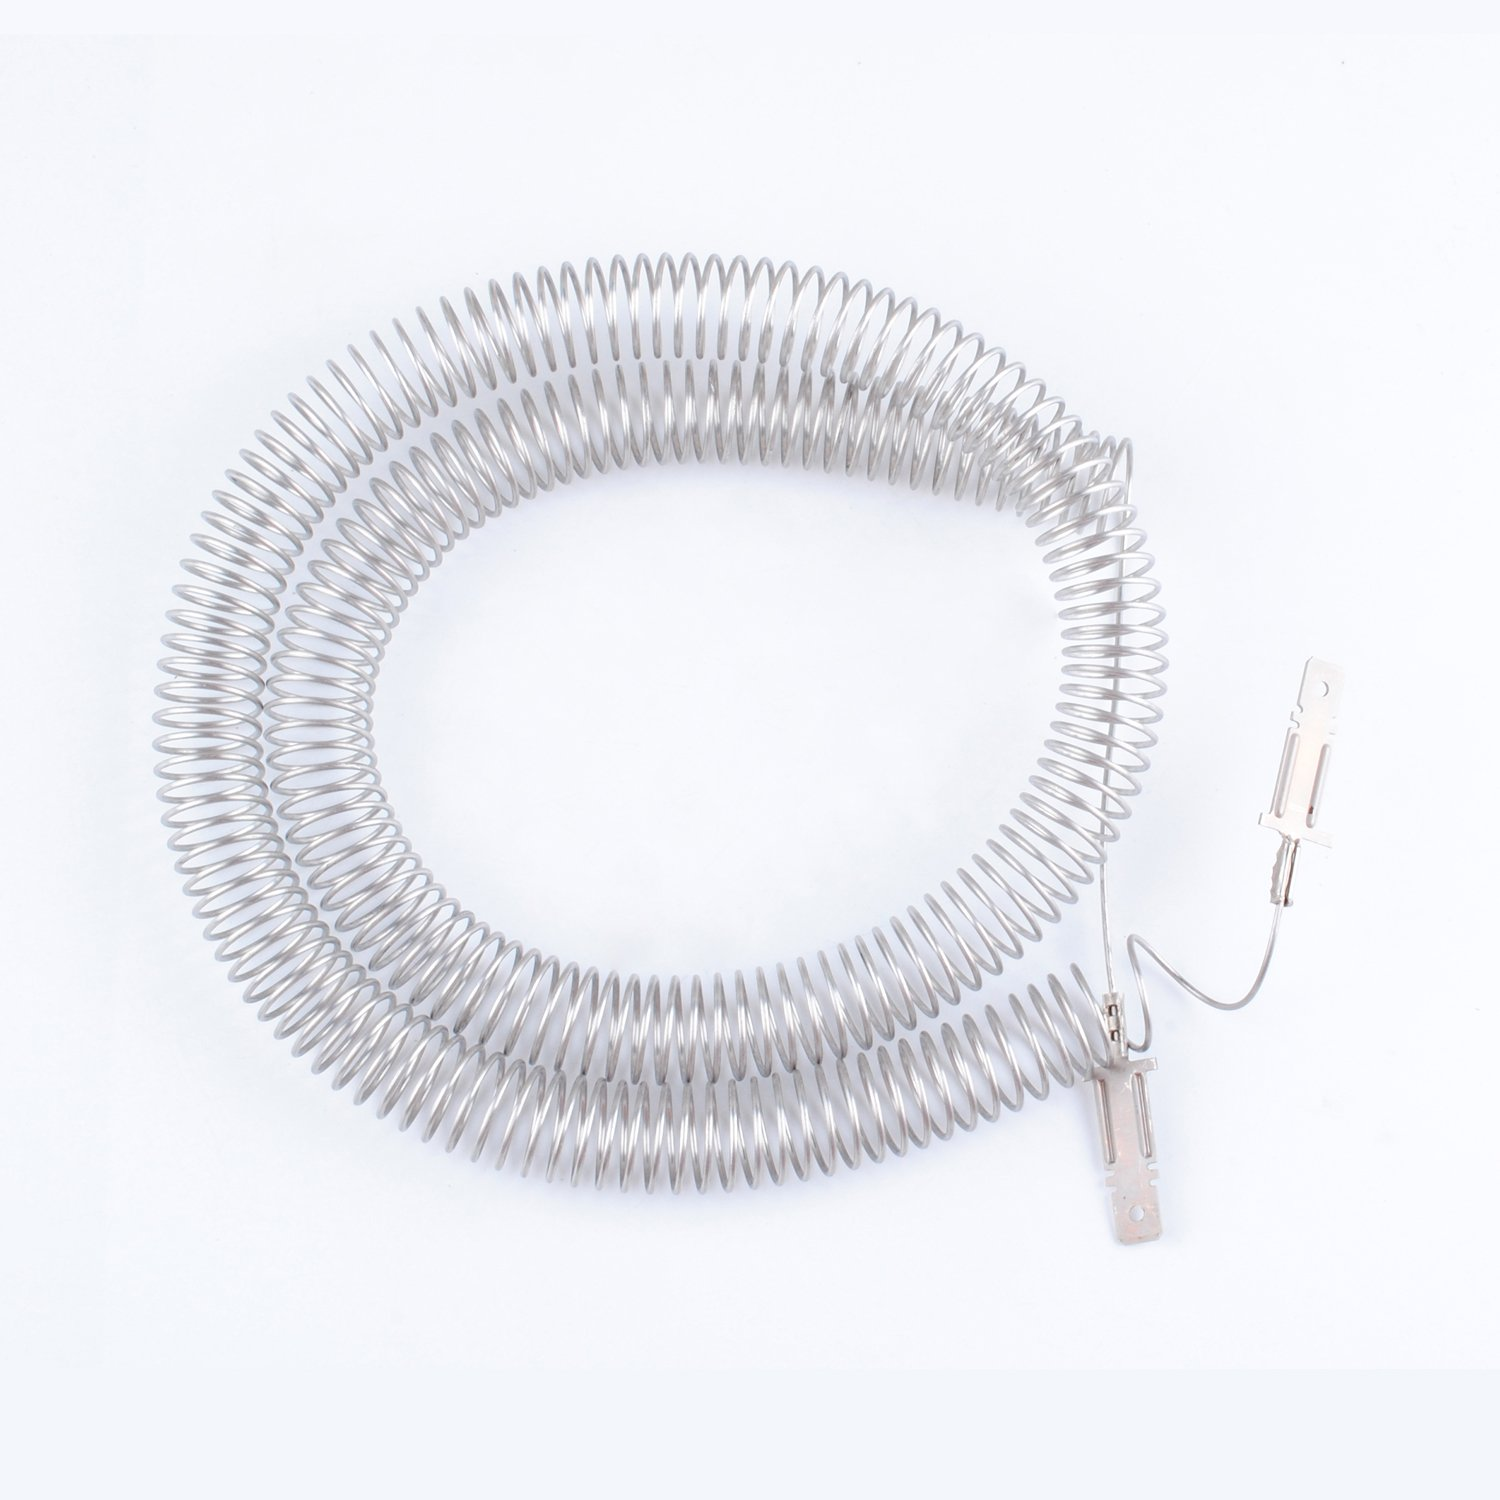 Amazon.com: Wadoy 5300622034 Dryer Heating Element Heater Coil Replacement for Frigidaire Gibson Kelvinator Kenmore Tappan Westinghouse: Home Improvement